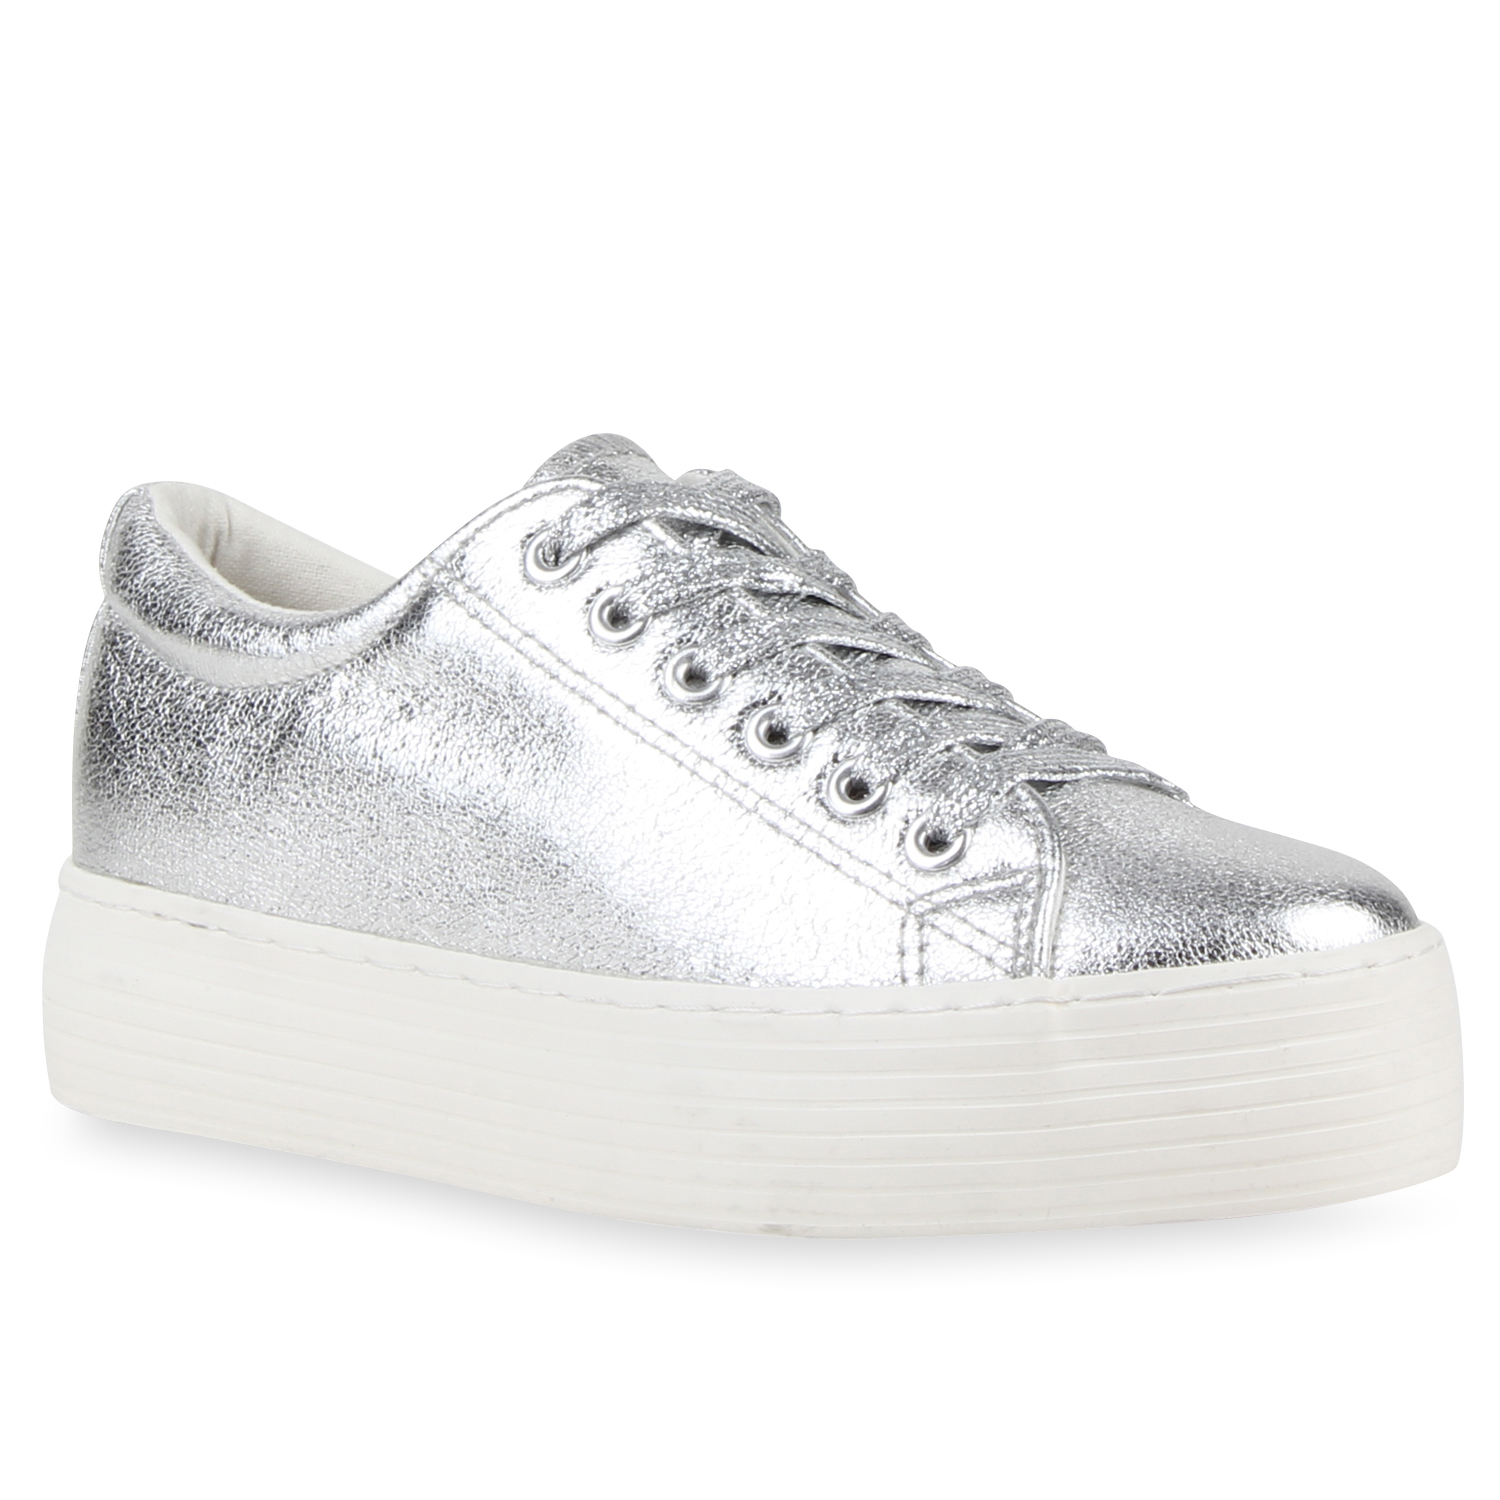 damen plateau sneakers low metallic turnschuhe glitzer schn rer 79663 ebay. Black Bedroom Furniture Sets. Home Design Ideas